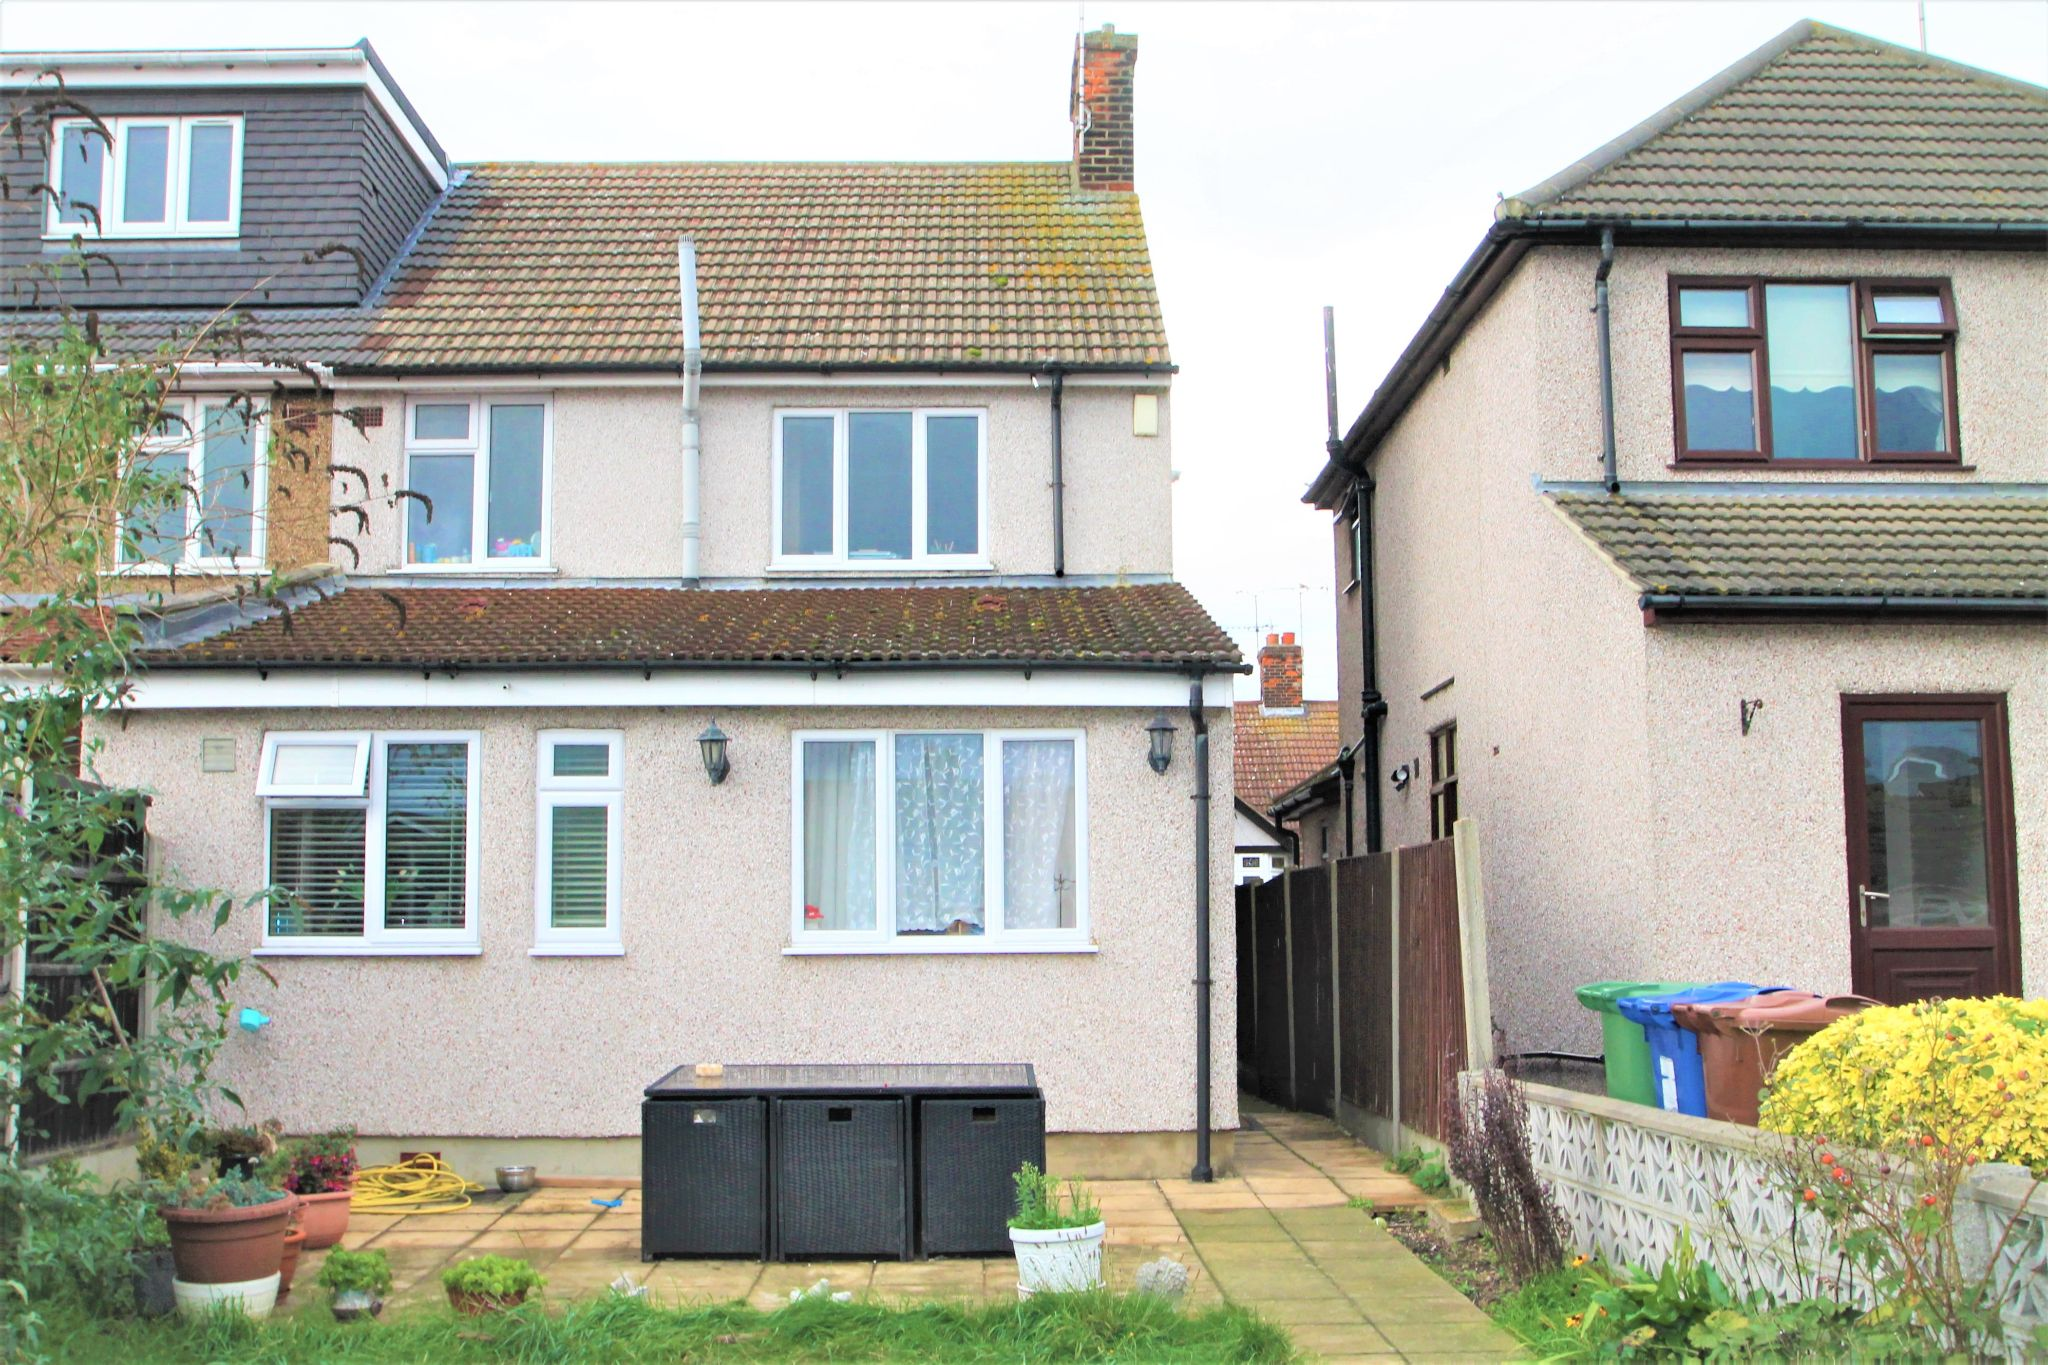 3 Bedroom Semi-detached House For Sale - Back